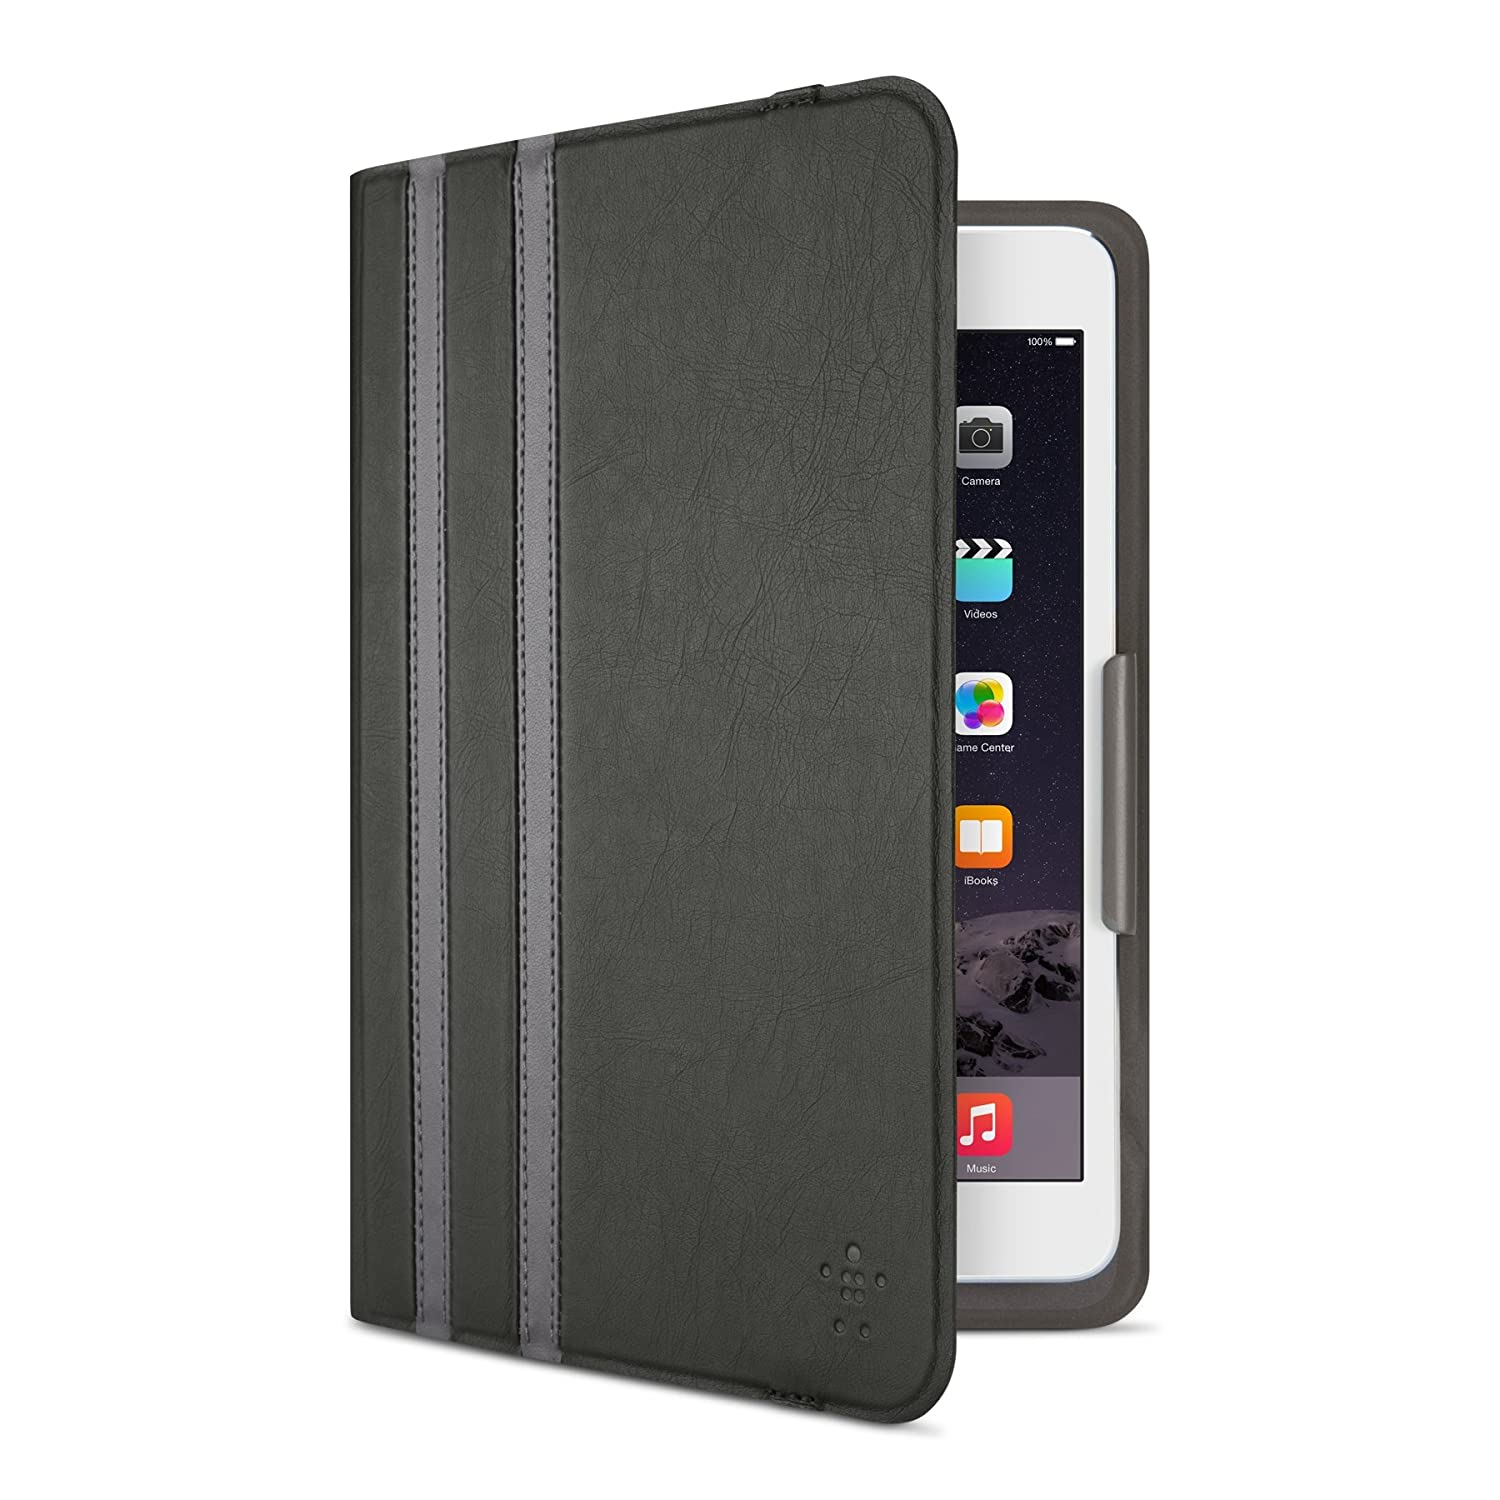 Belkin 8 Twin Stripe Cover for iPad Mini 1/2/3/4 in Black